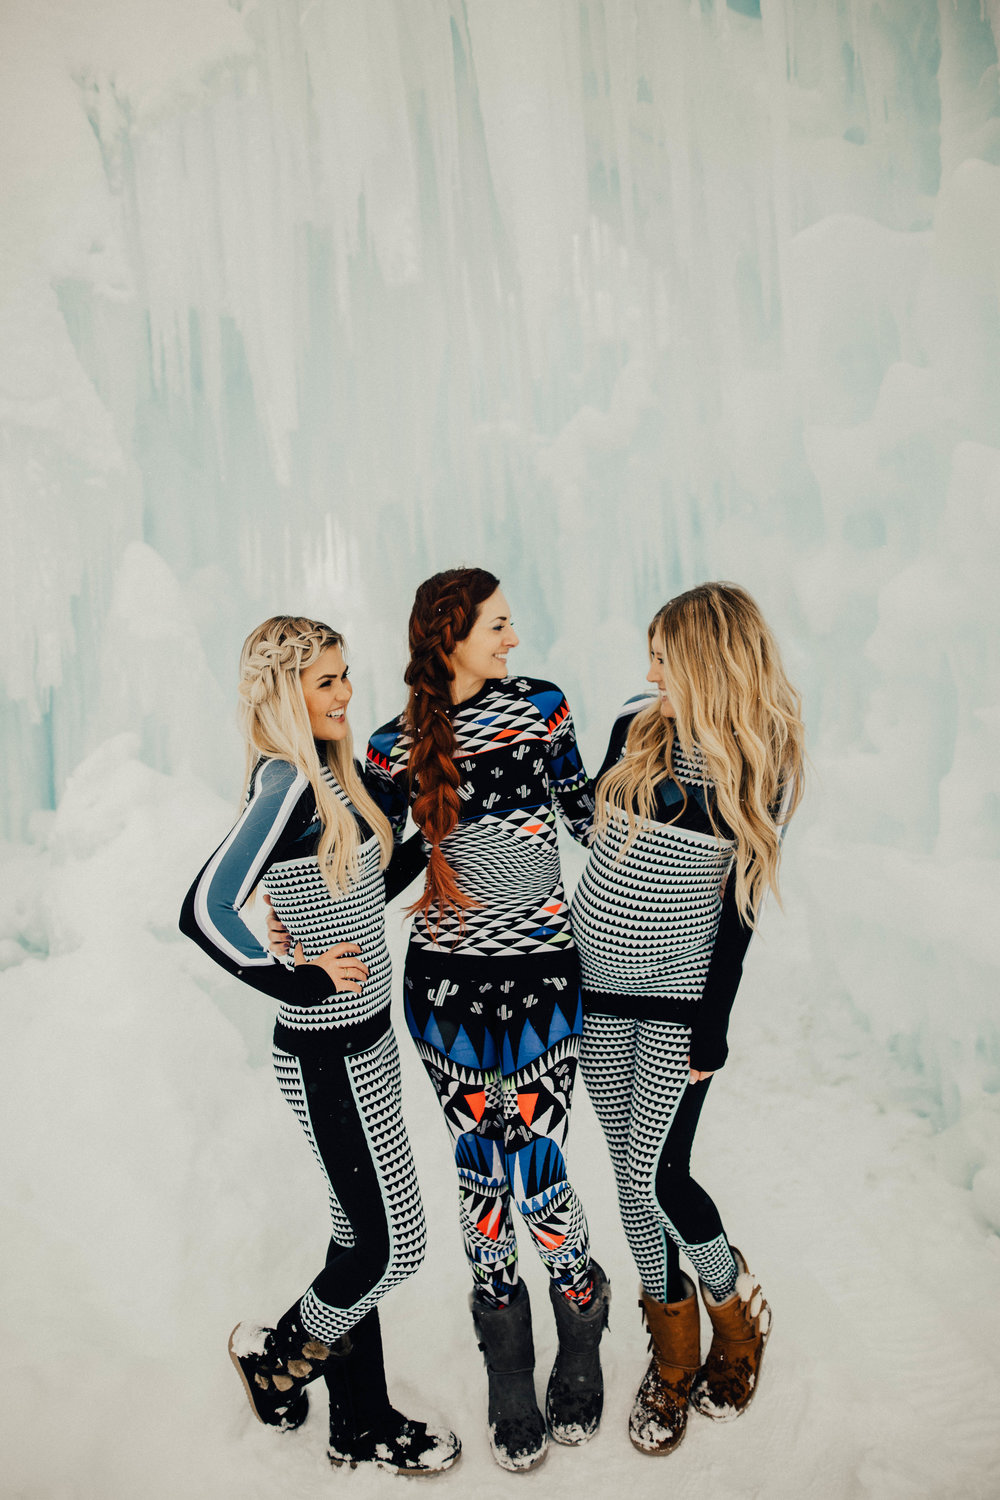 Influencers rock their Sweaty Betty ski suits at the Ice Castles.